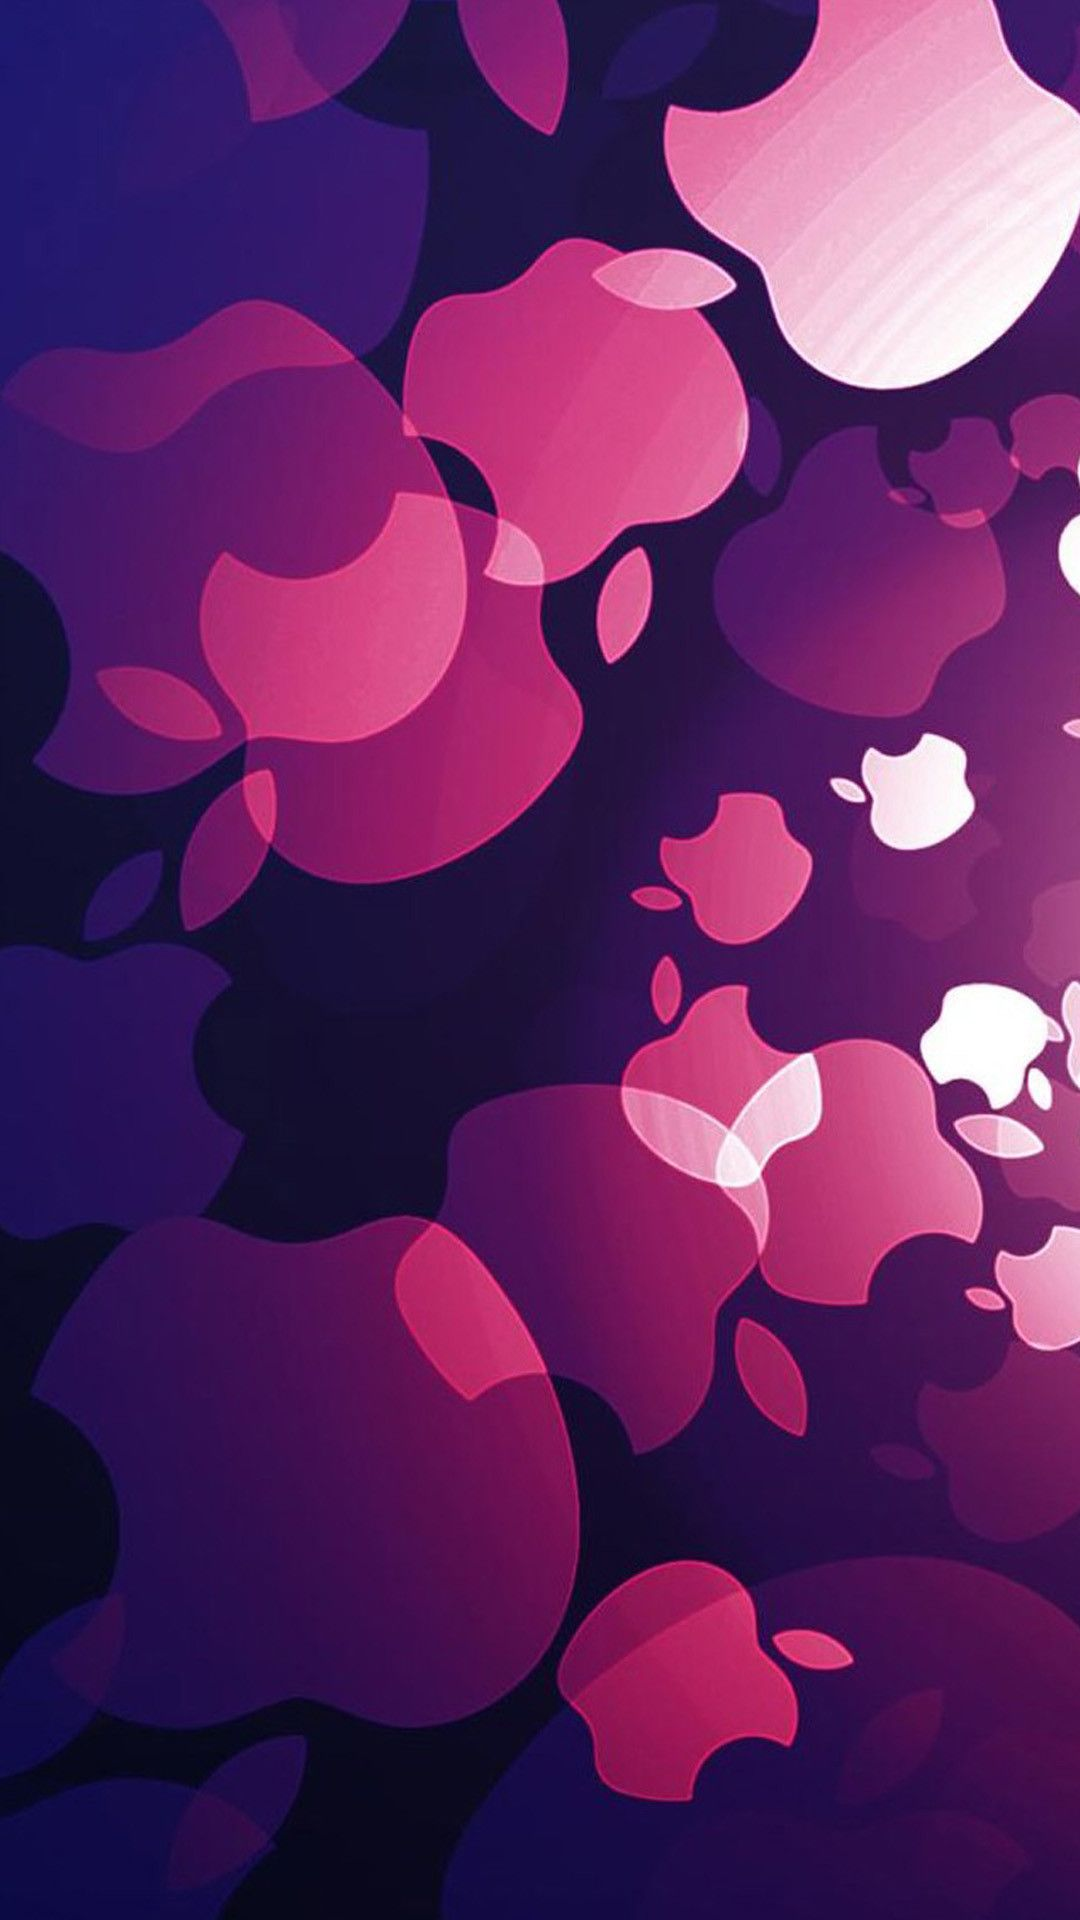 New Girly Pink Wallpapers 1080x1920 For Windows 7 Apple Logo Wallpaper Apple Iphone Wallpaper Hd Apple Logo Design